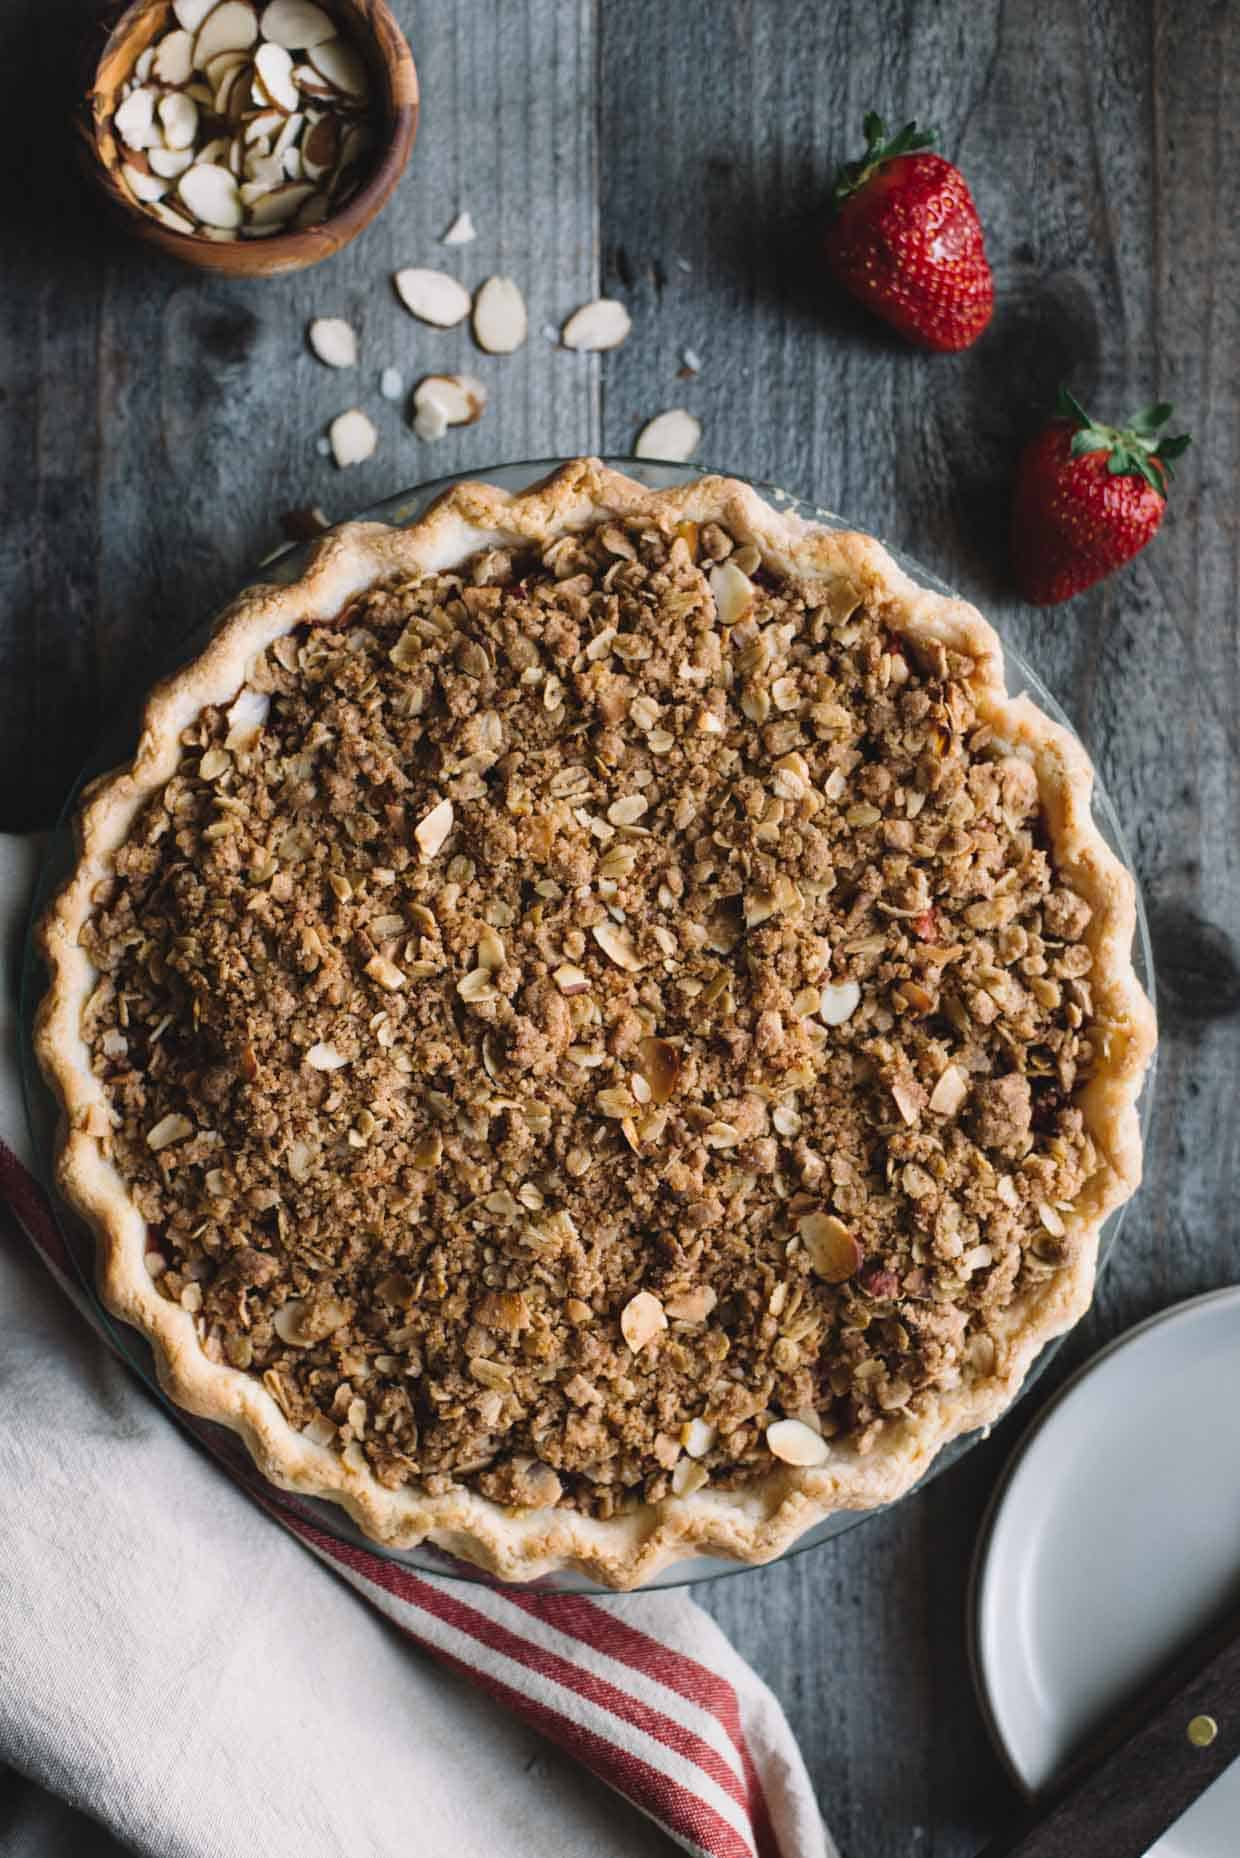 Gluten-Free Strawberry Rhubarb Pie with Crumb Topping - delicious spring pie by @lisalin8